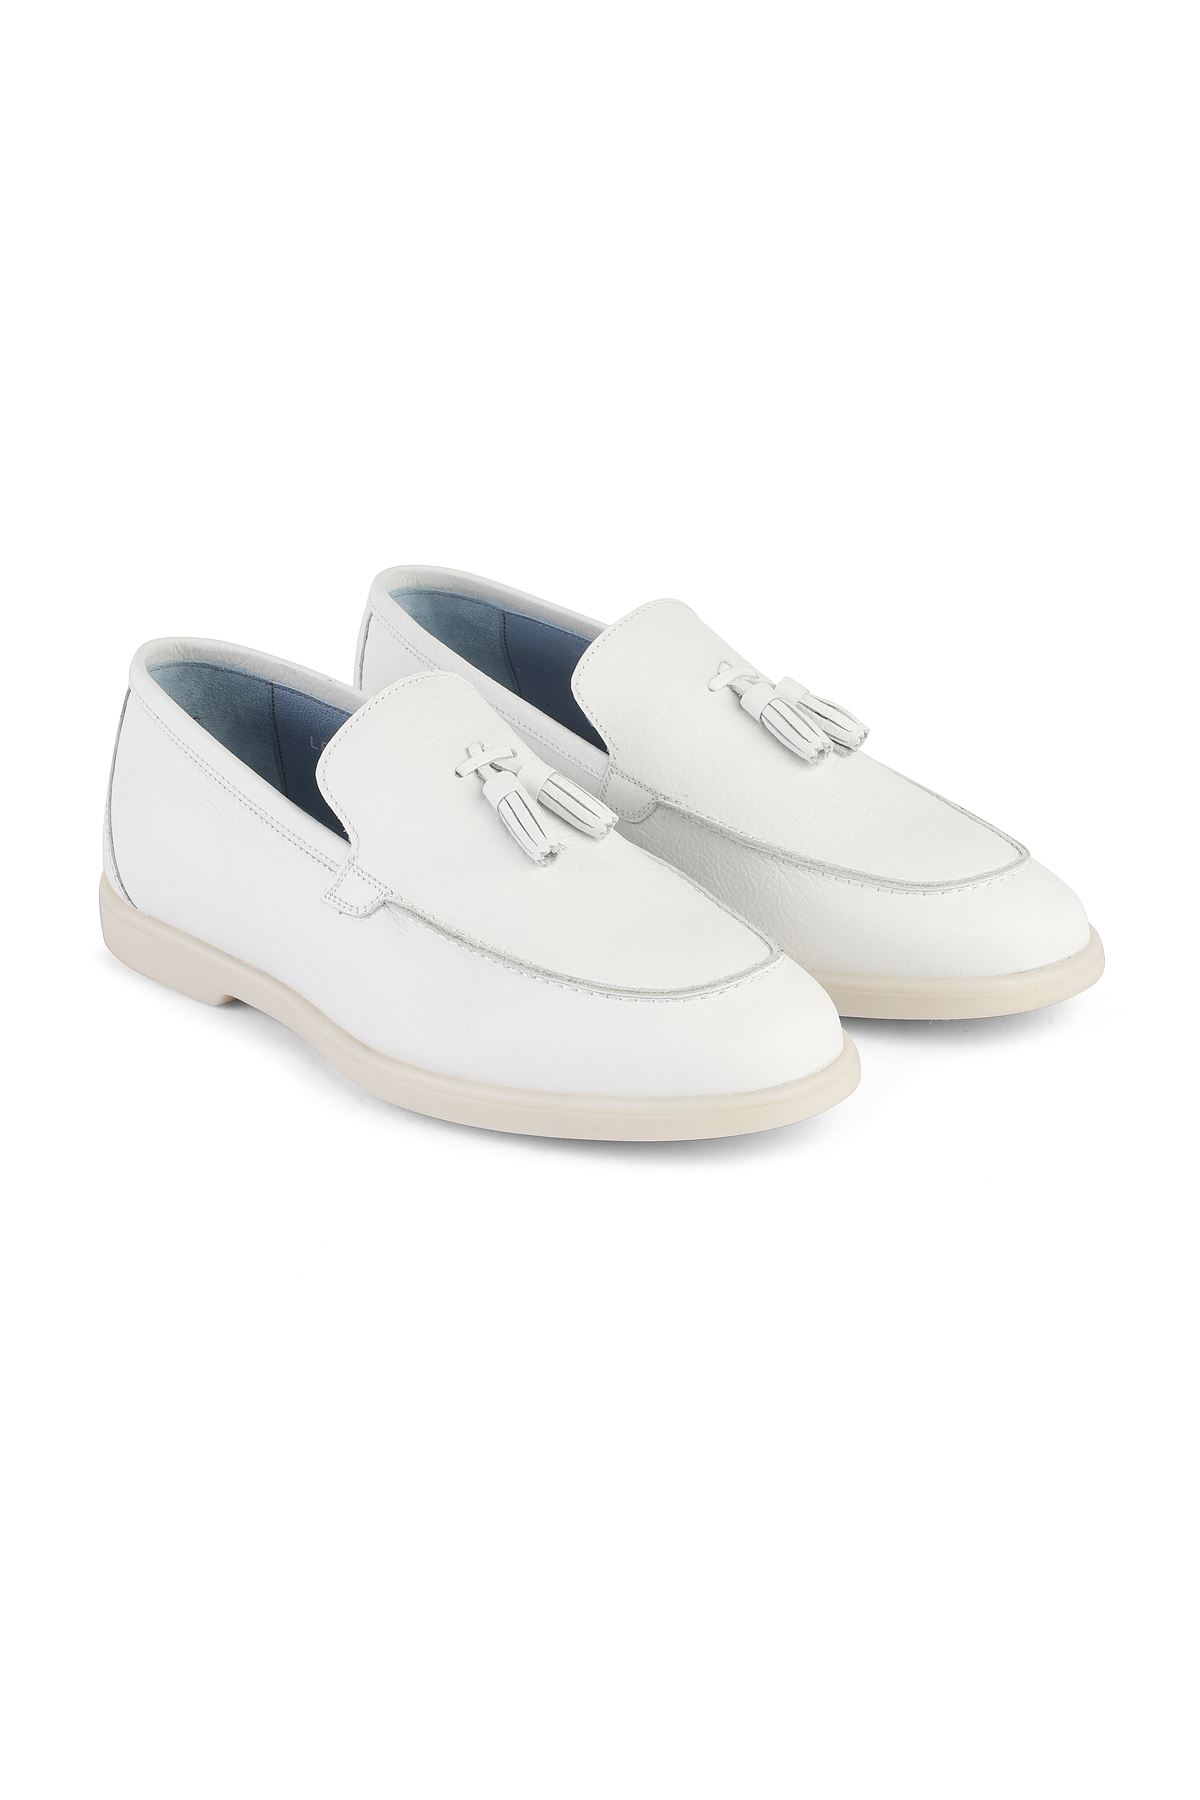 Libero 3219 White Loafer Shoes